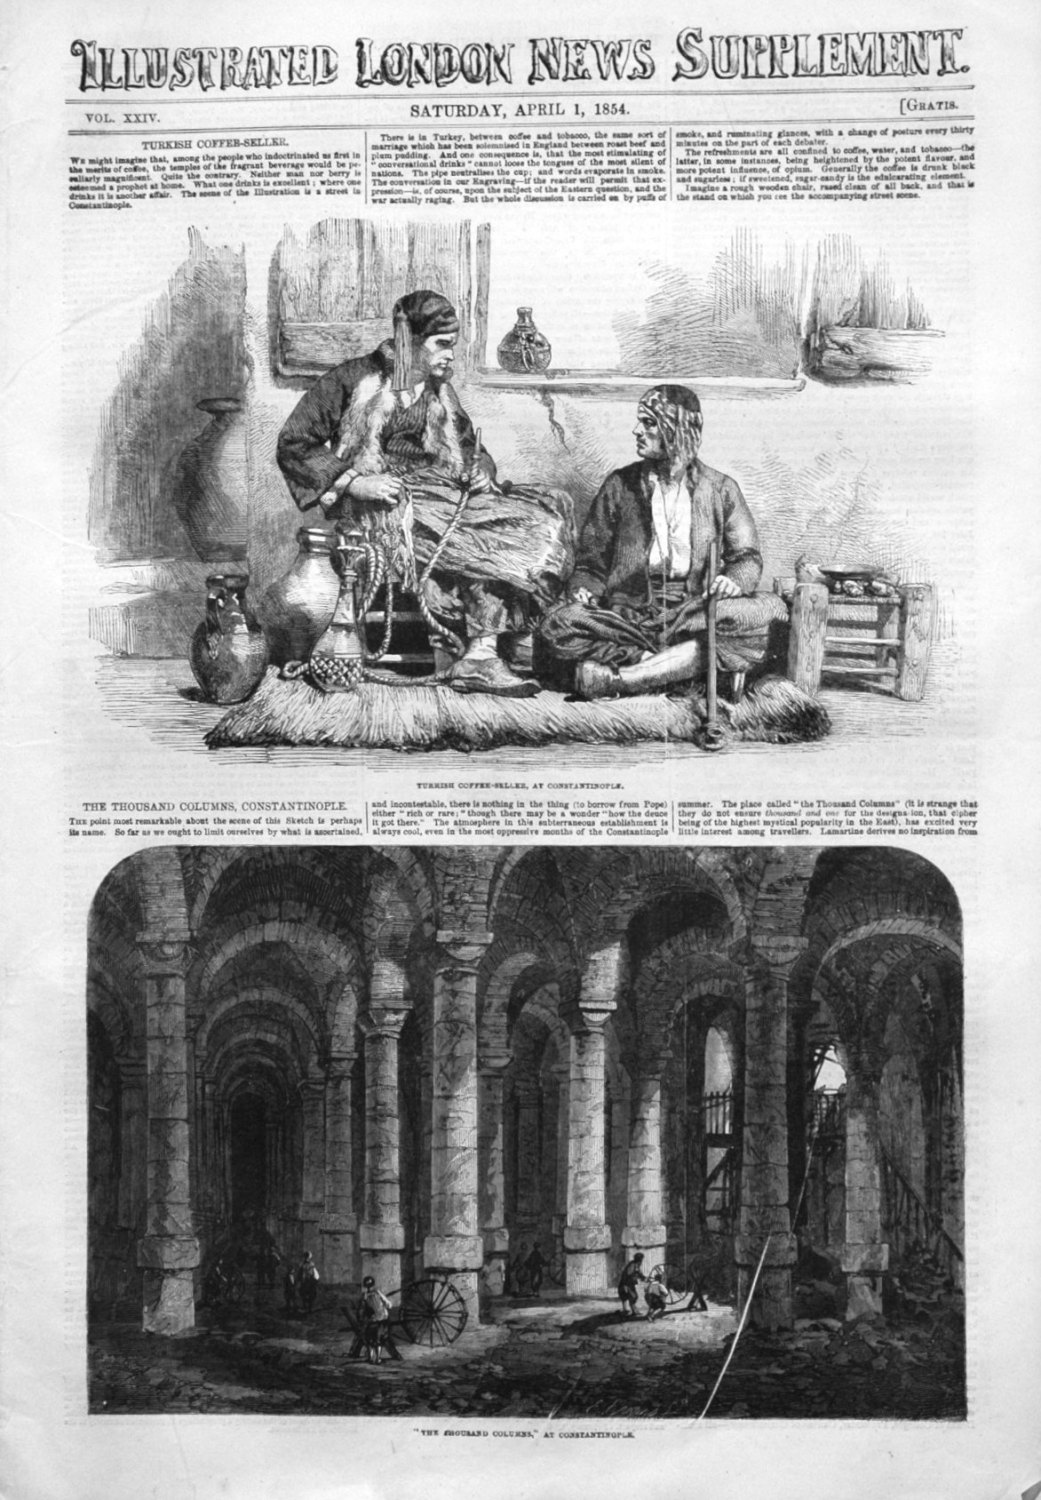 Illustrated London News (Supplement) for April 1st 1854.